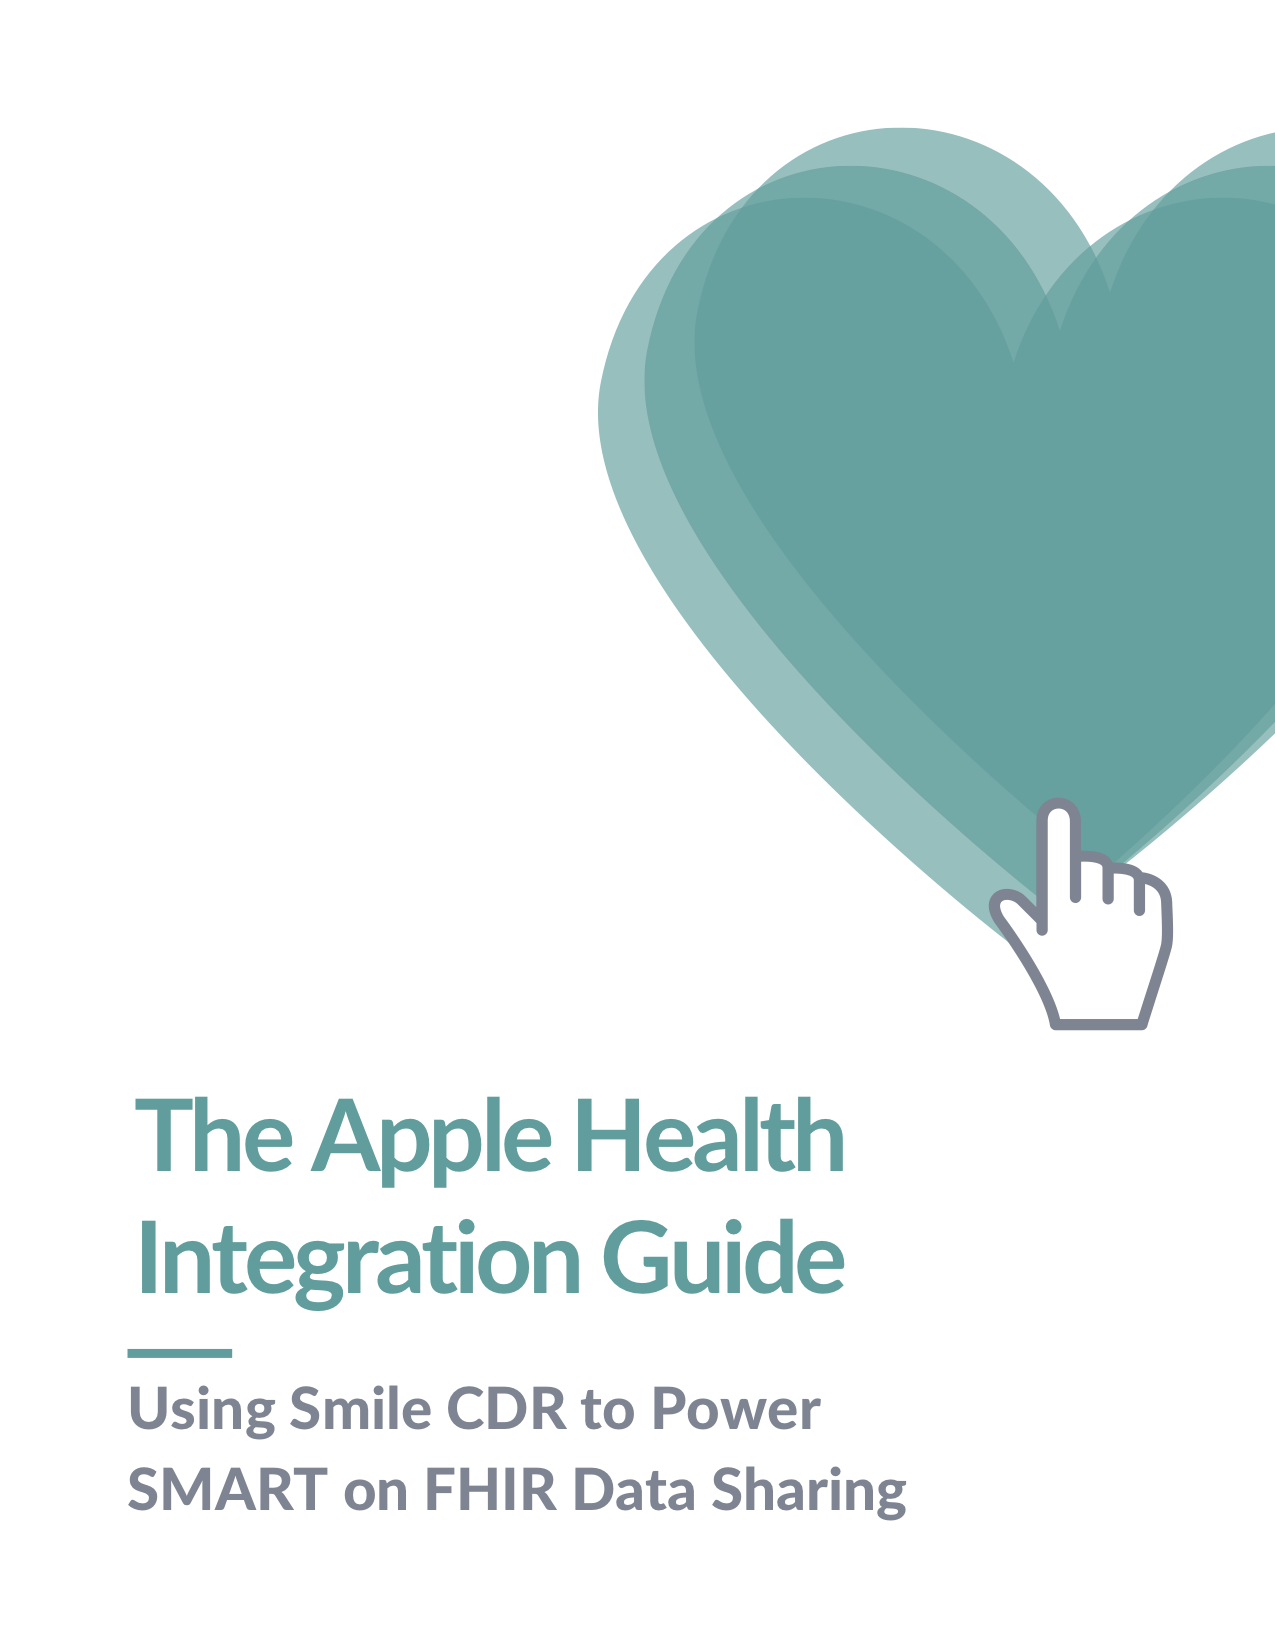 Apple Health Intergration Guide